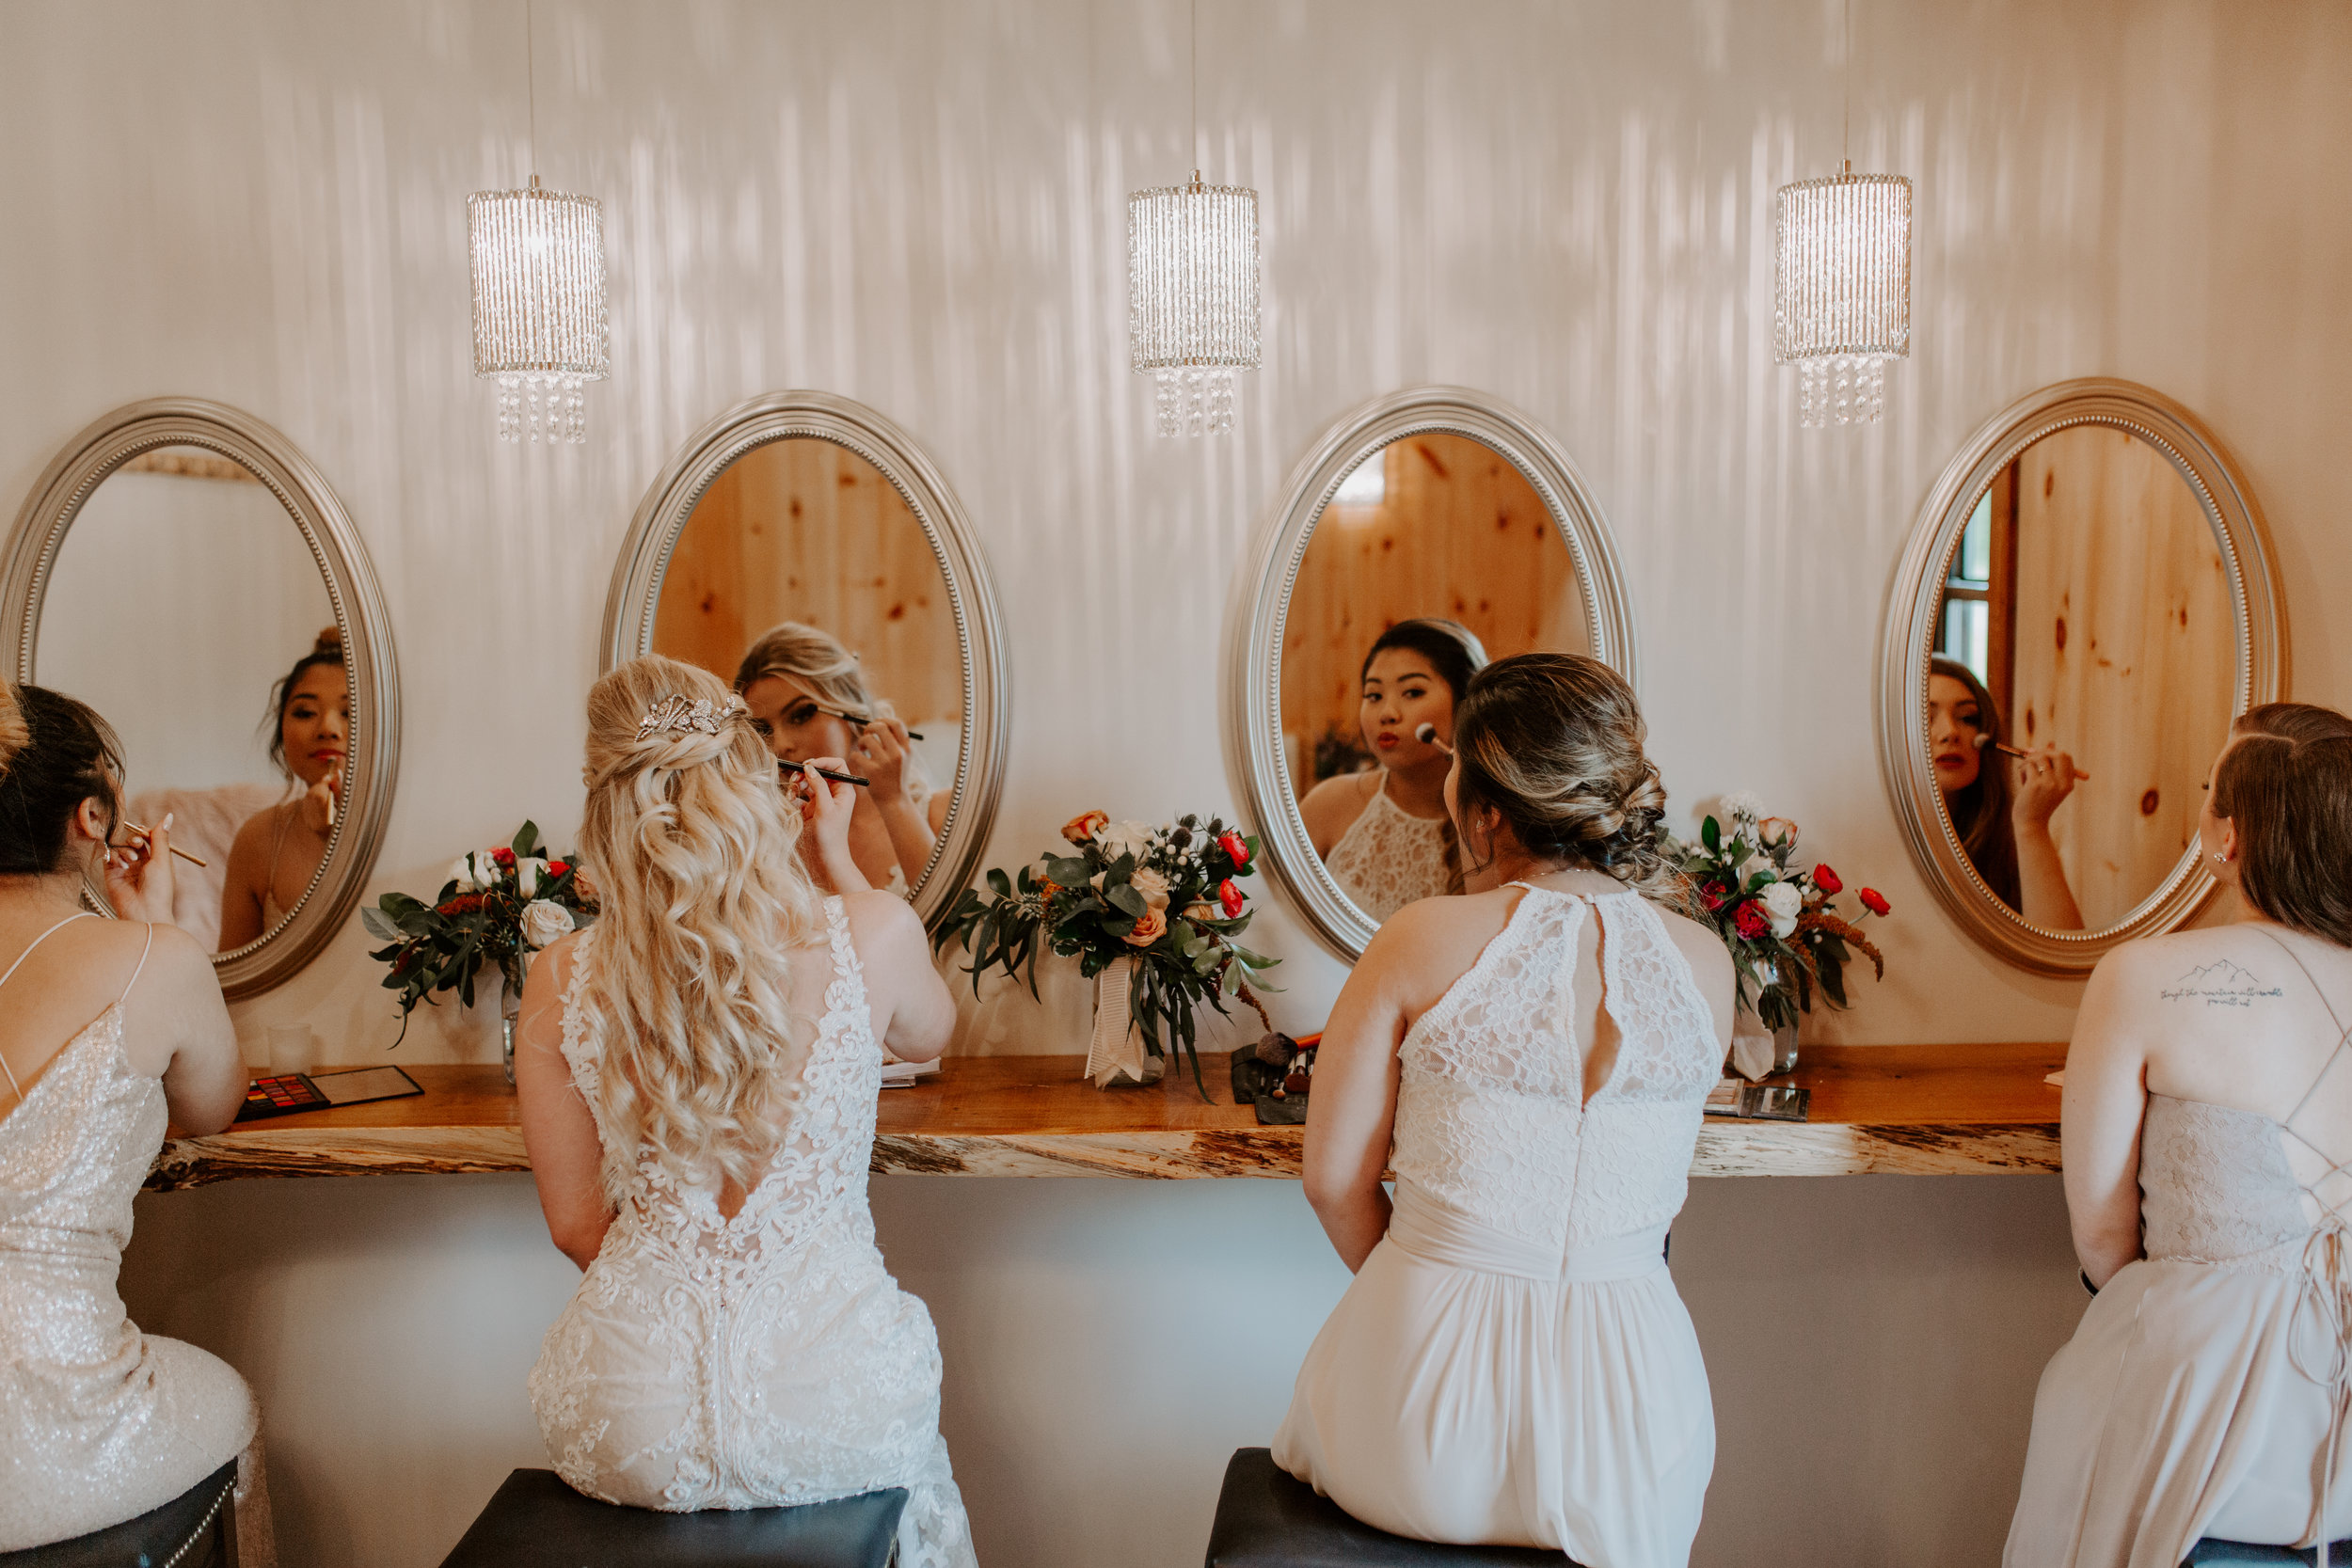 Bridesmaids getting ready in front of mirrors at wedding venue, Country Lane Lodge in Adel Iowa, wearing blush, grey, and cream designer gowns from West Des Moines Iowa